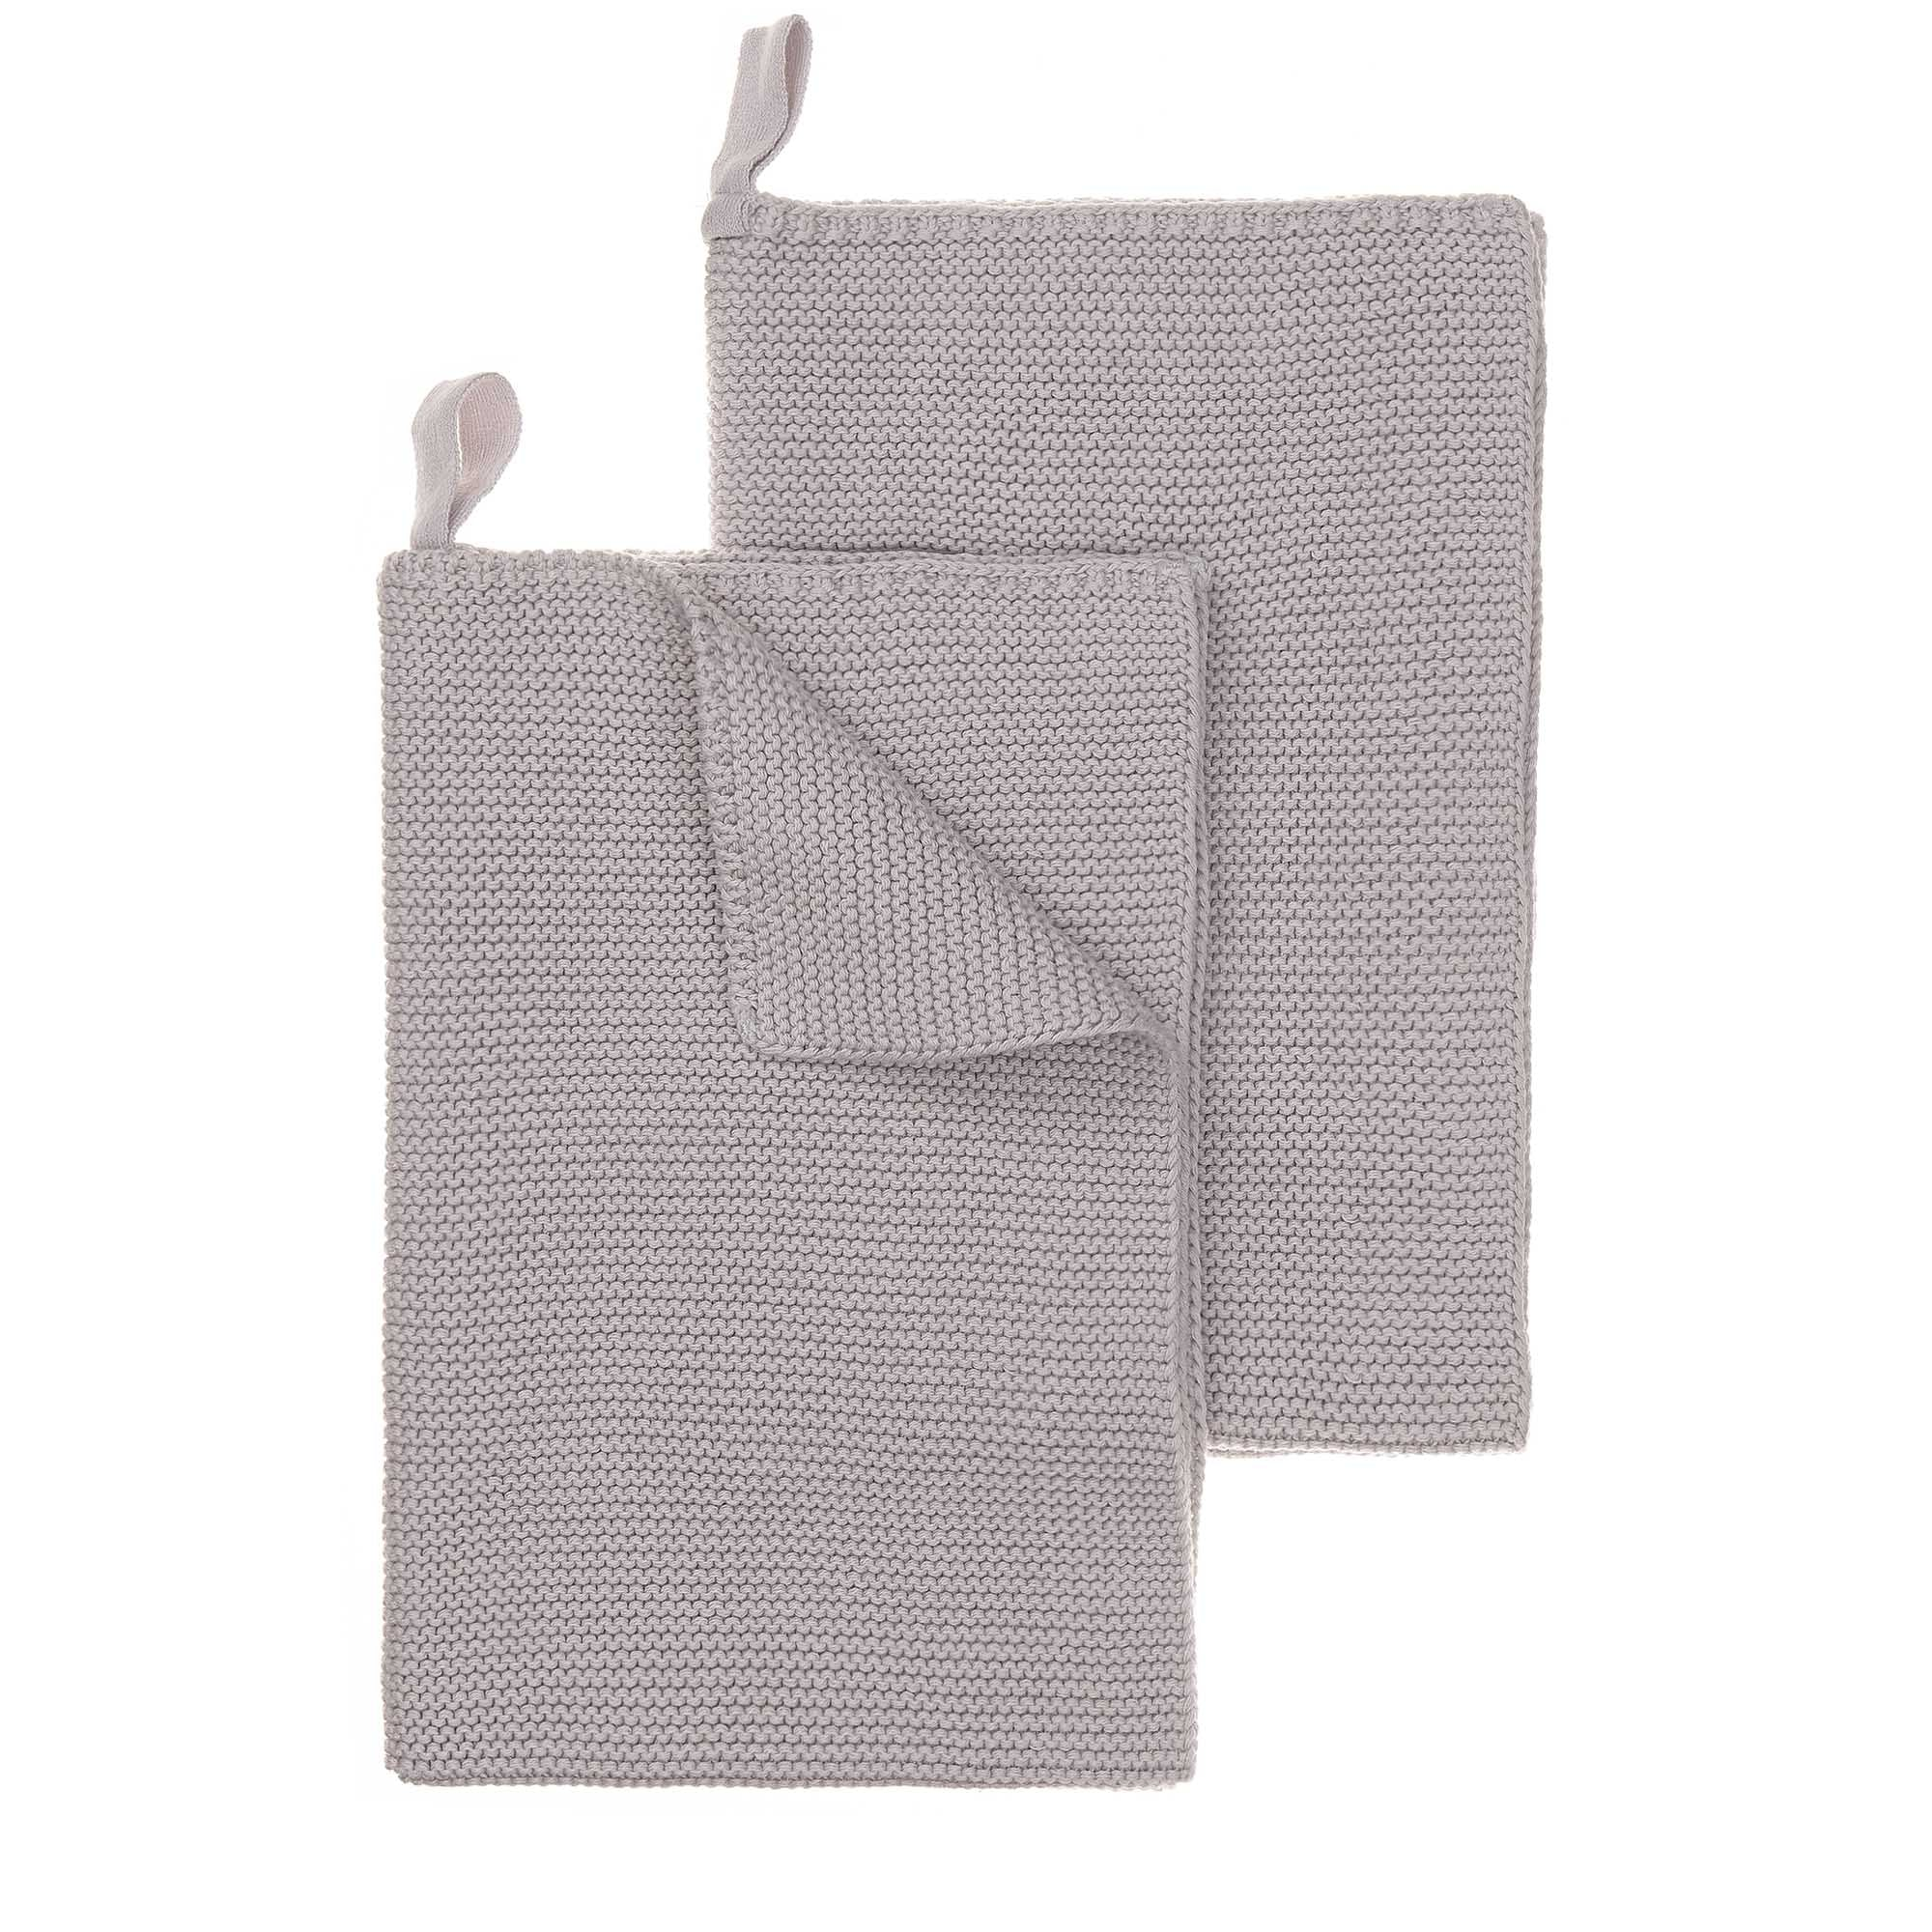 Safara Tea Towel Set [Silver grey]